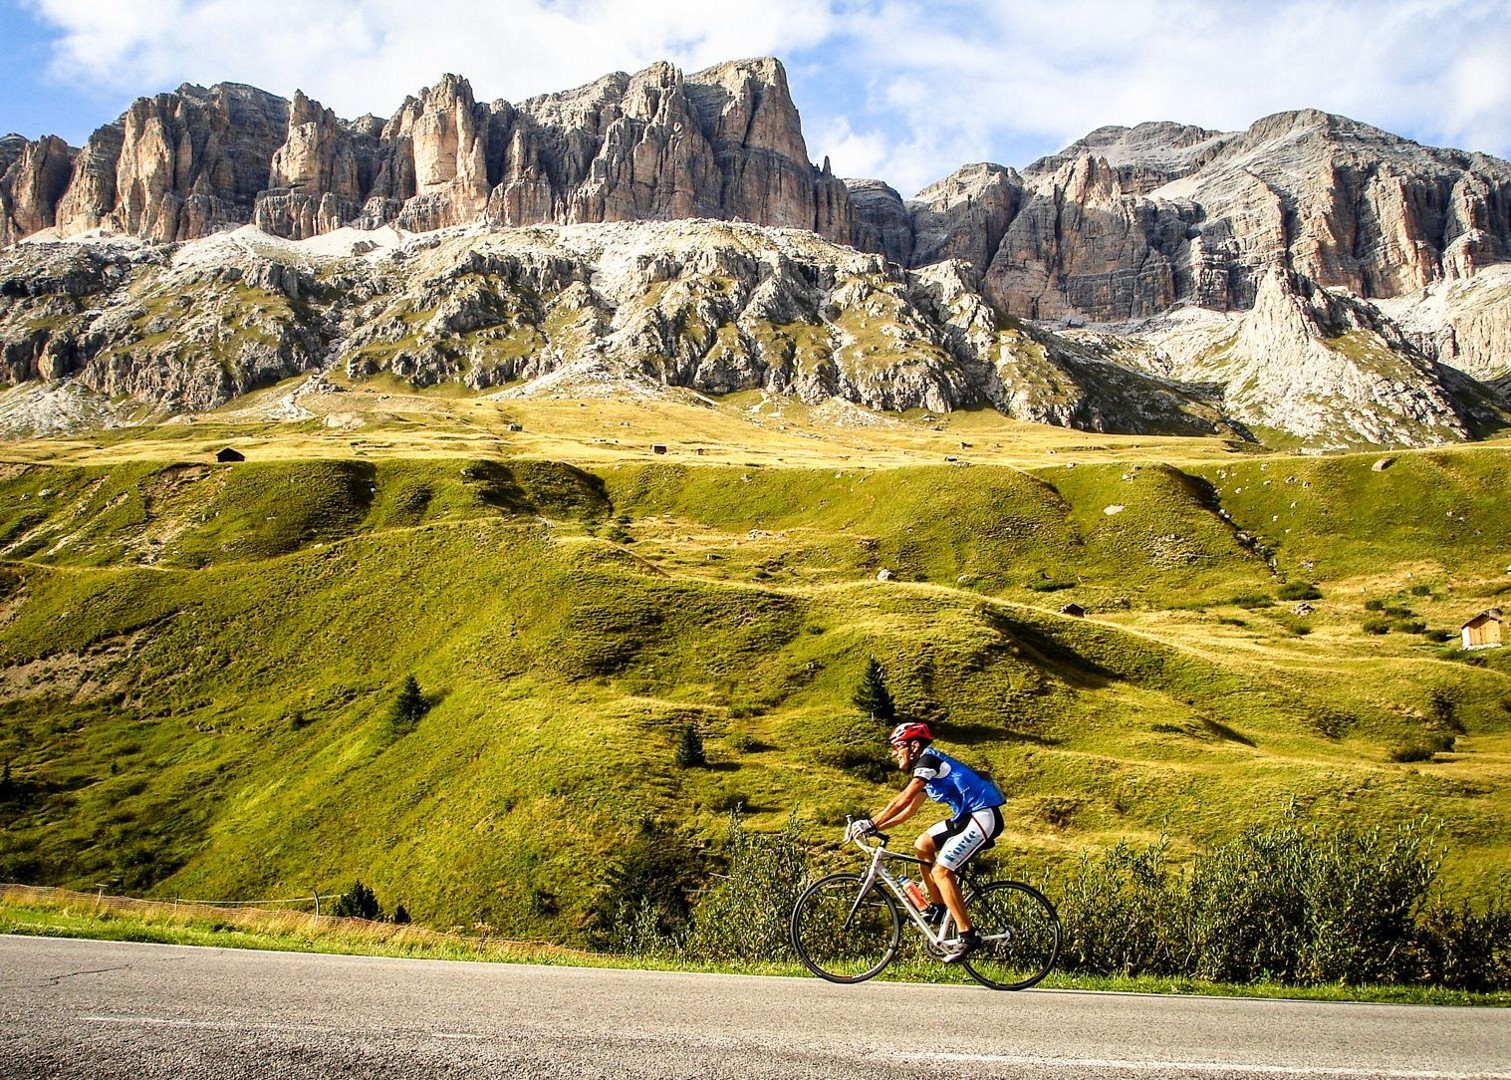 Droad-cycling-cols-of-italy-switzerland-and-france.jpg - Italy - Italian Dolomites - Guided Road Cycling Holiday - Italia Road Cycling